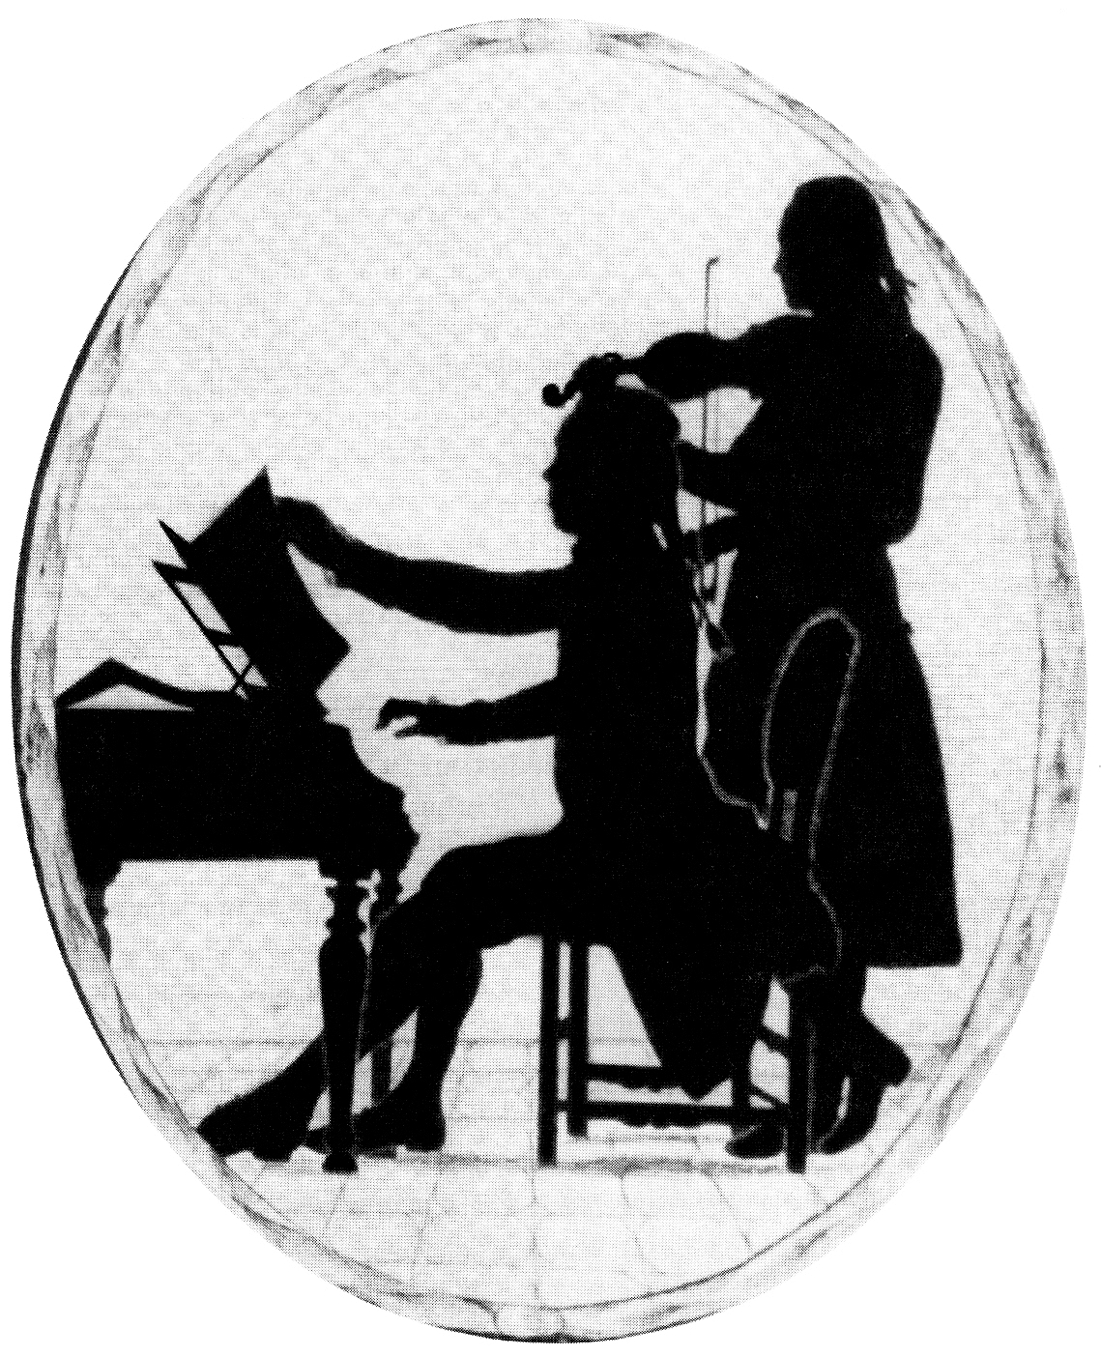 Widnmann, Joseph, <em>Silhouette of Wallerstein Court Musicians Playing a Sonata.</em>